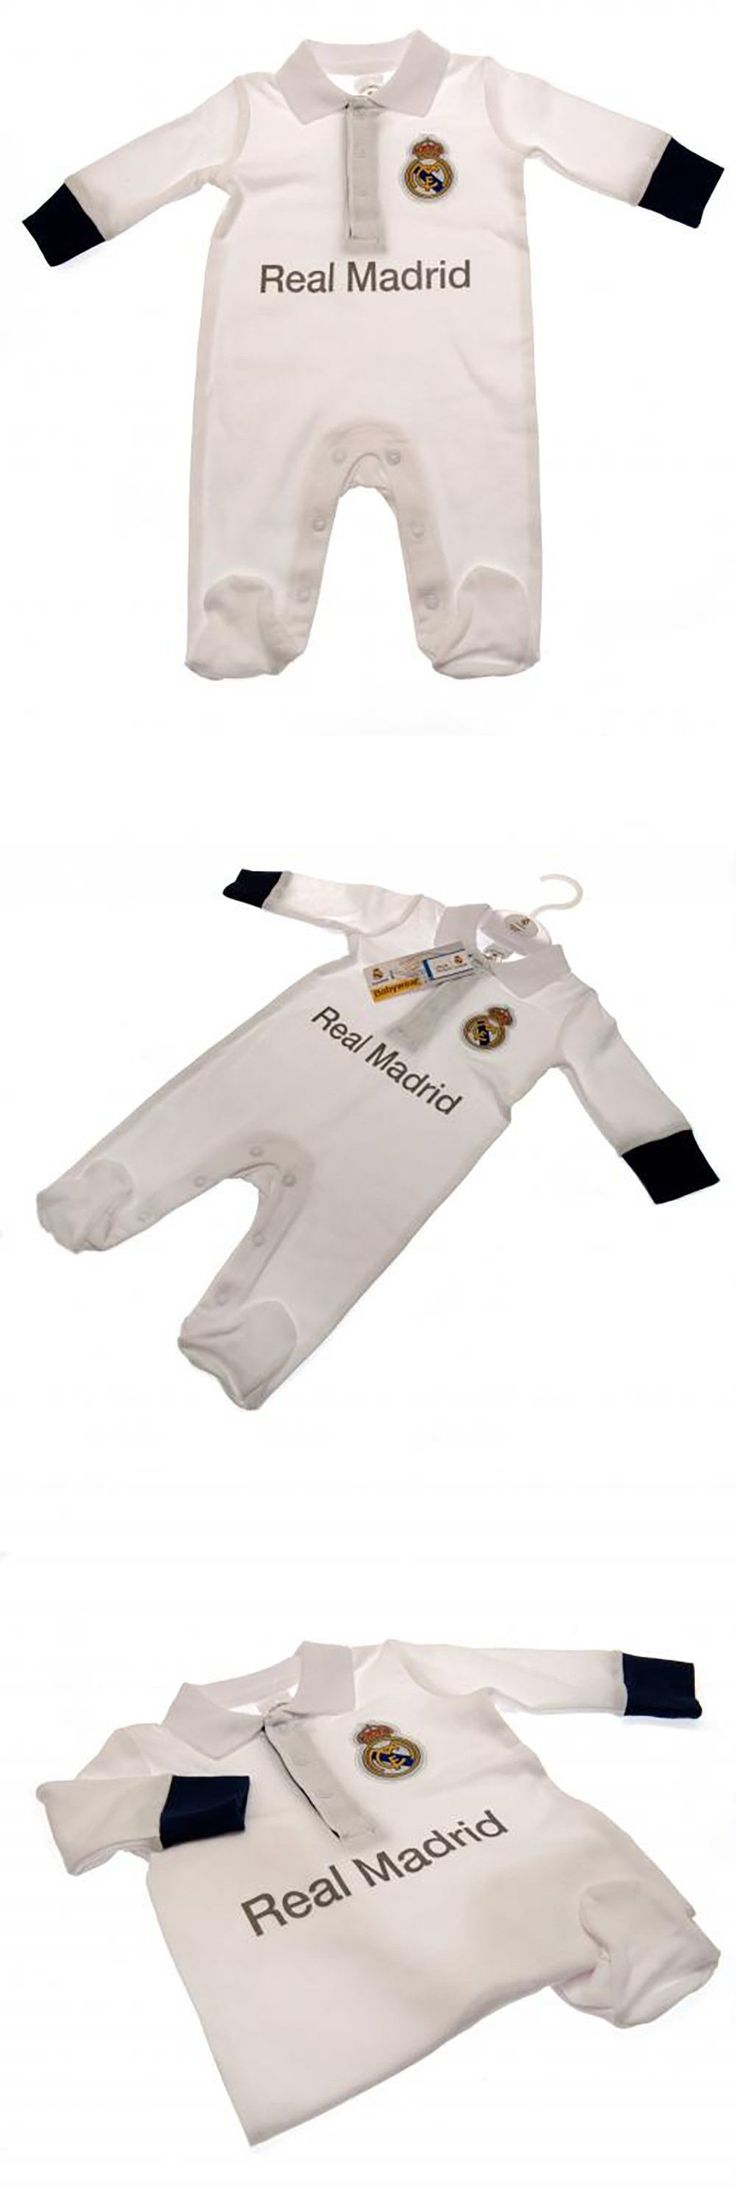 Soccer-Other 2885: 100% Cotton Baby Sleep Suit - Real Madrid Champion League (Pl 0 3 Months) New -> BUY IT NOW ONLY: $41.87 on eBay!